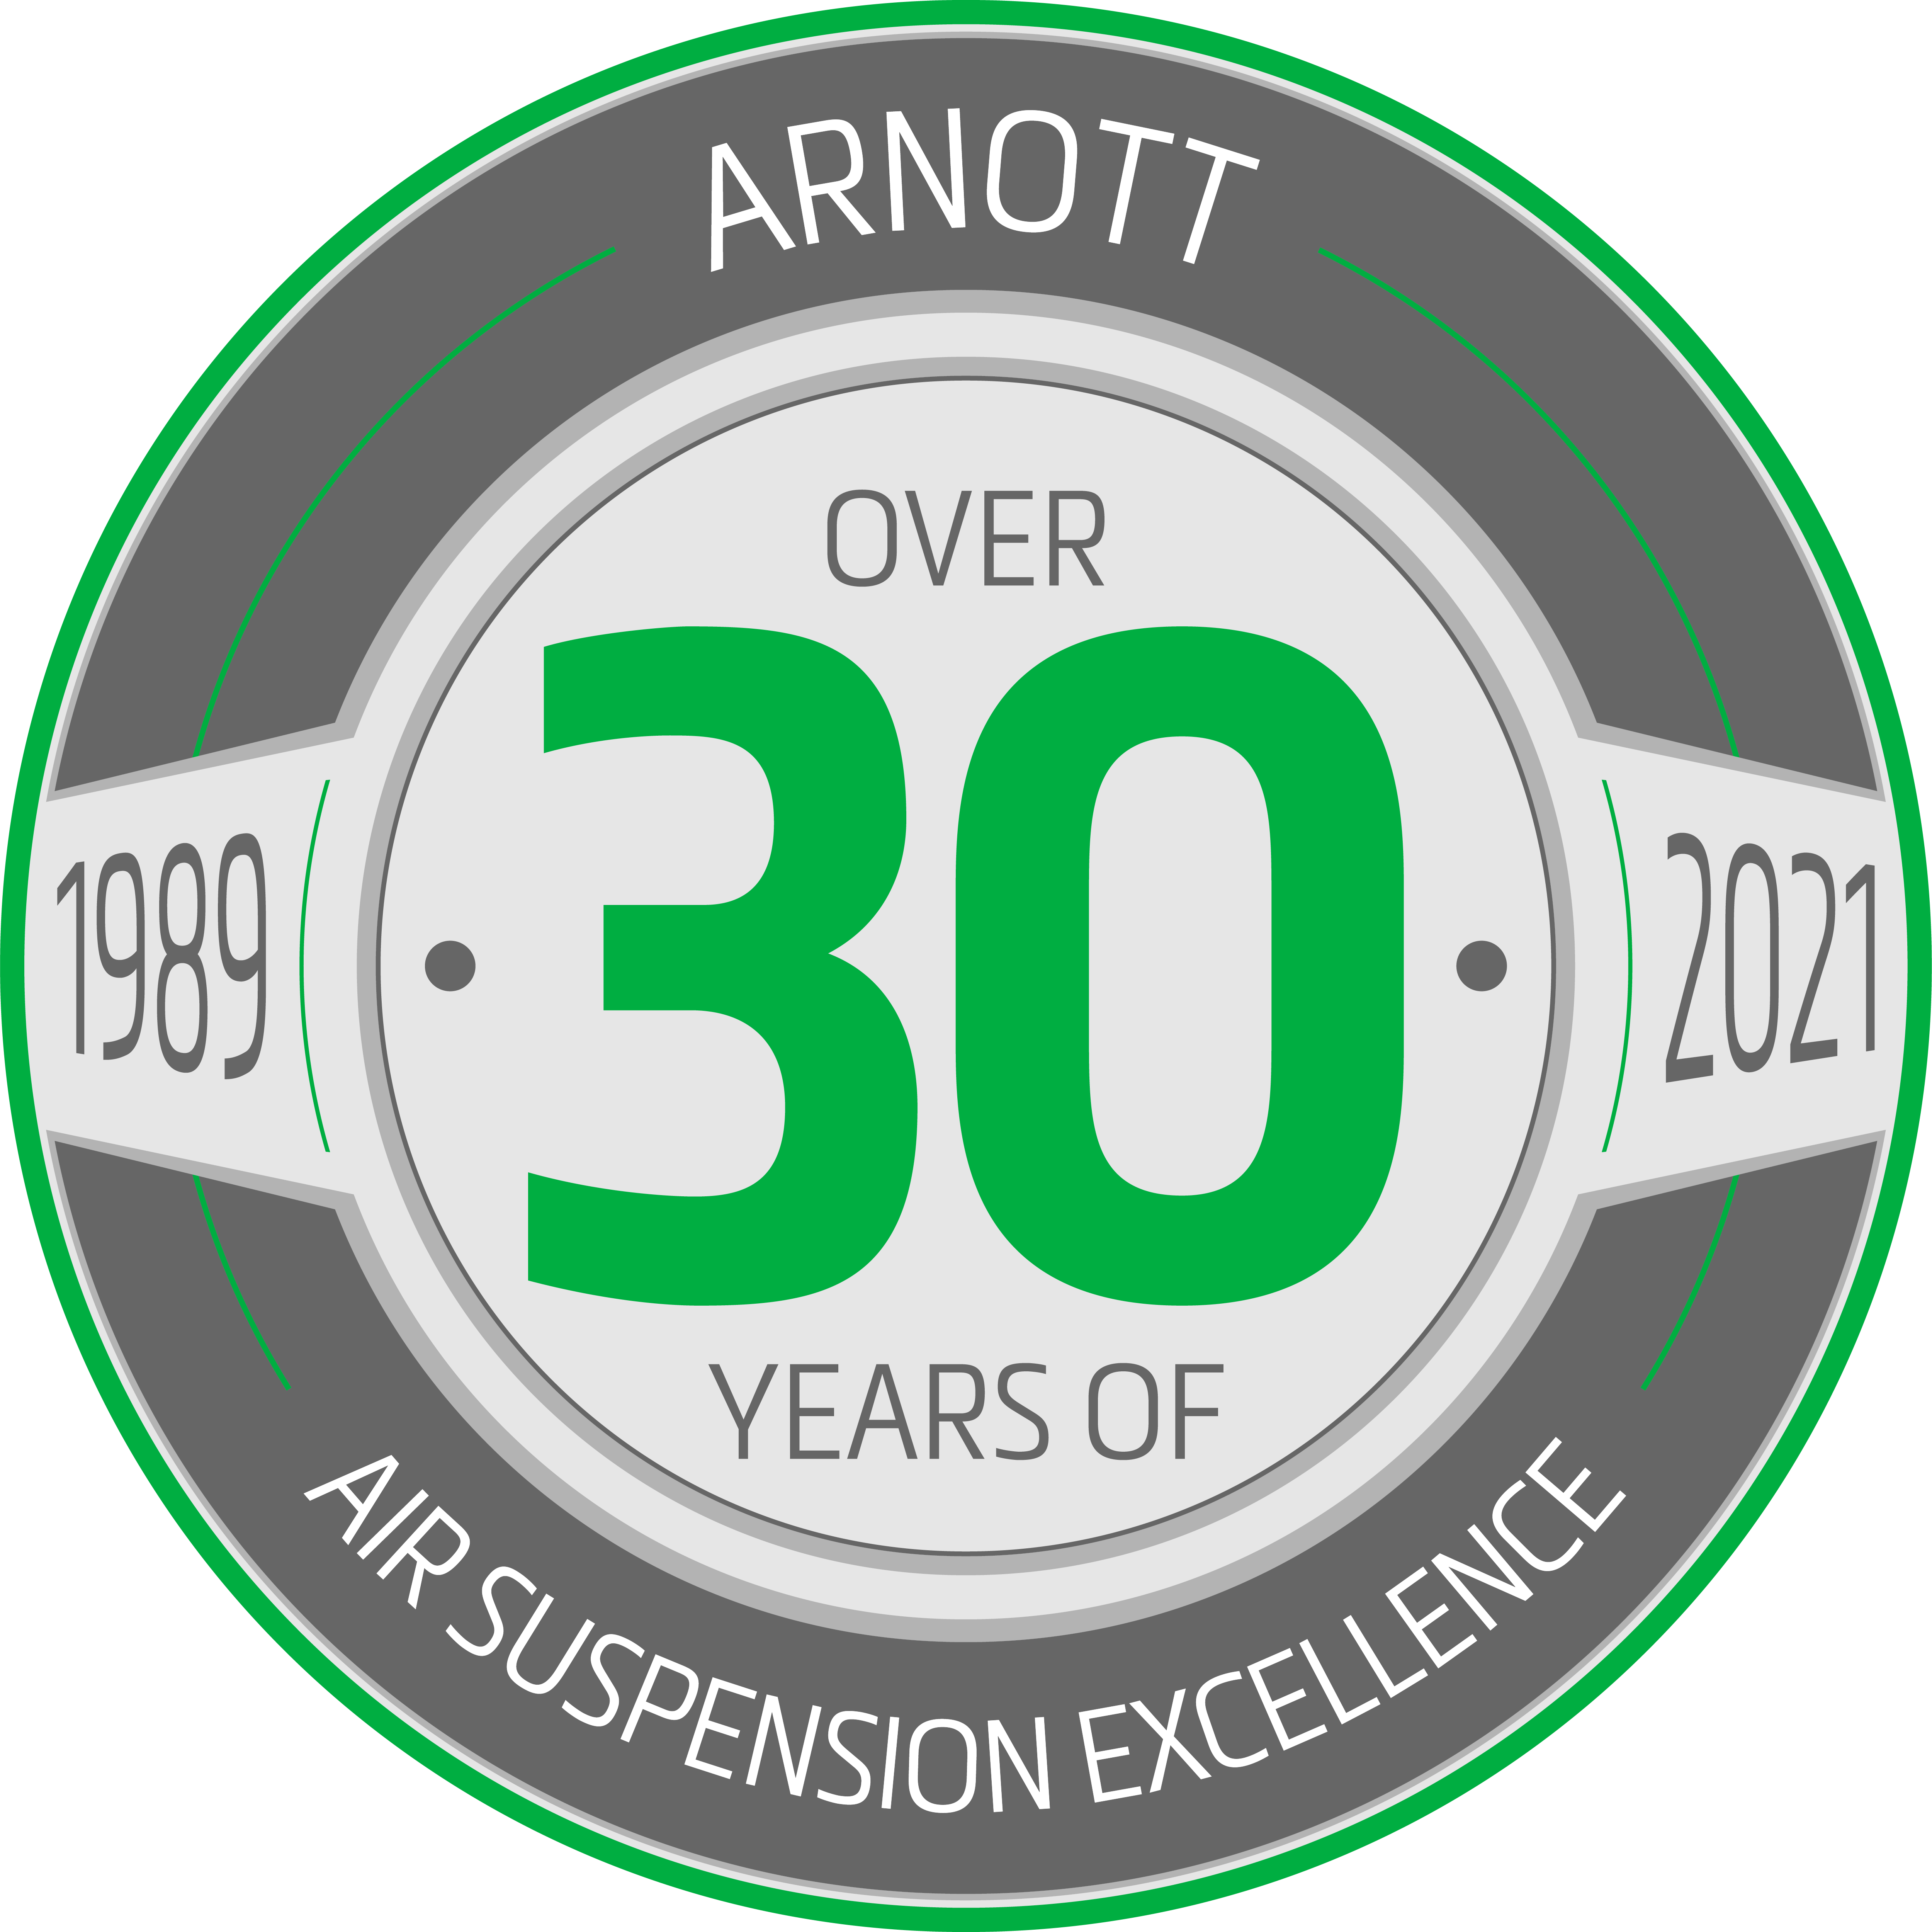 Arnott: Over 30 Years of Air Suspension Excellence